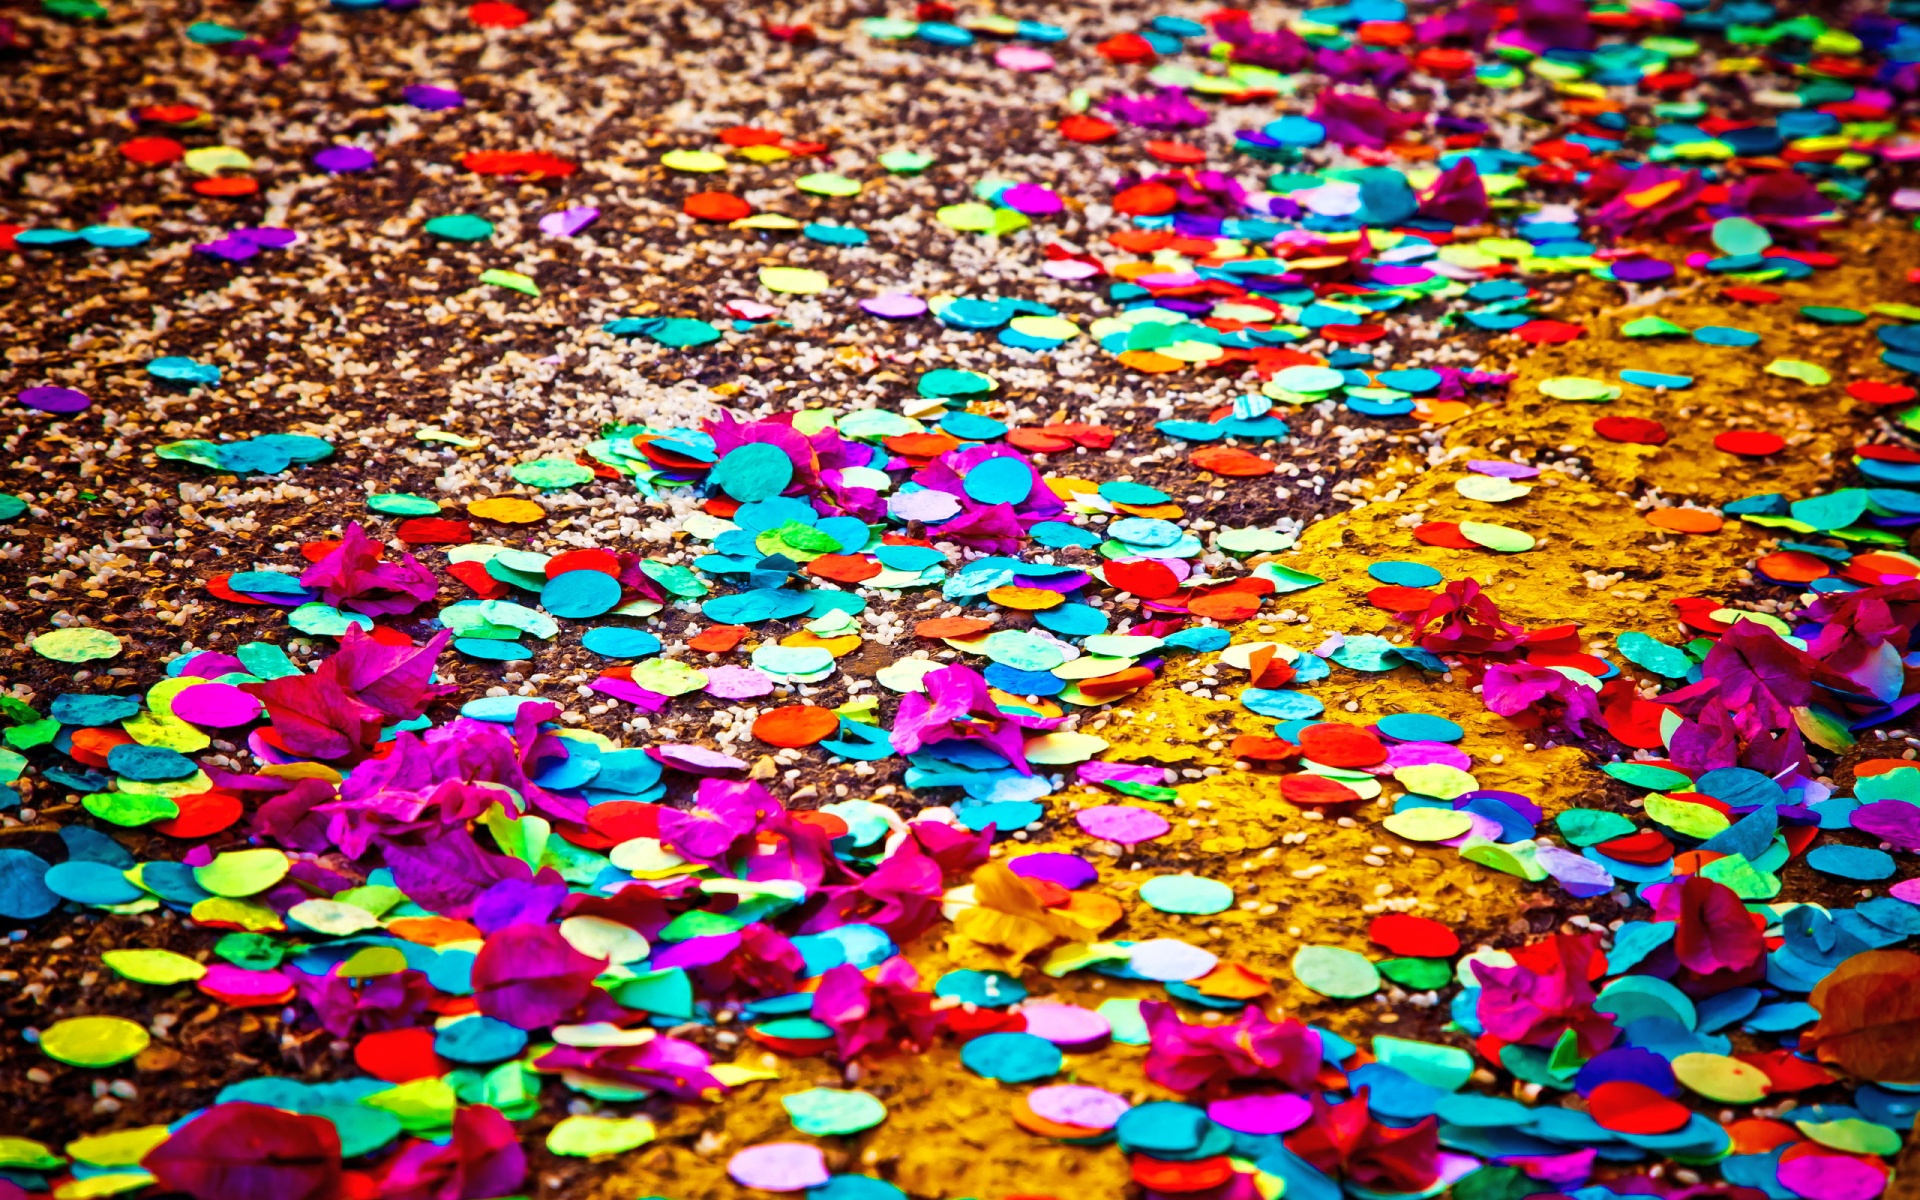 http://blog.hdwallsource.com/wp-content/uploads/2016/04/colorful-confetti-wallpaper-45338-46549-hd-wallpapers.jpg Confetti